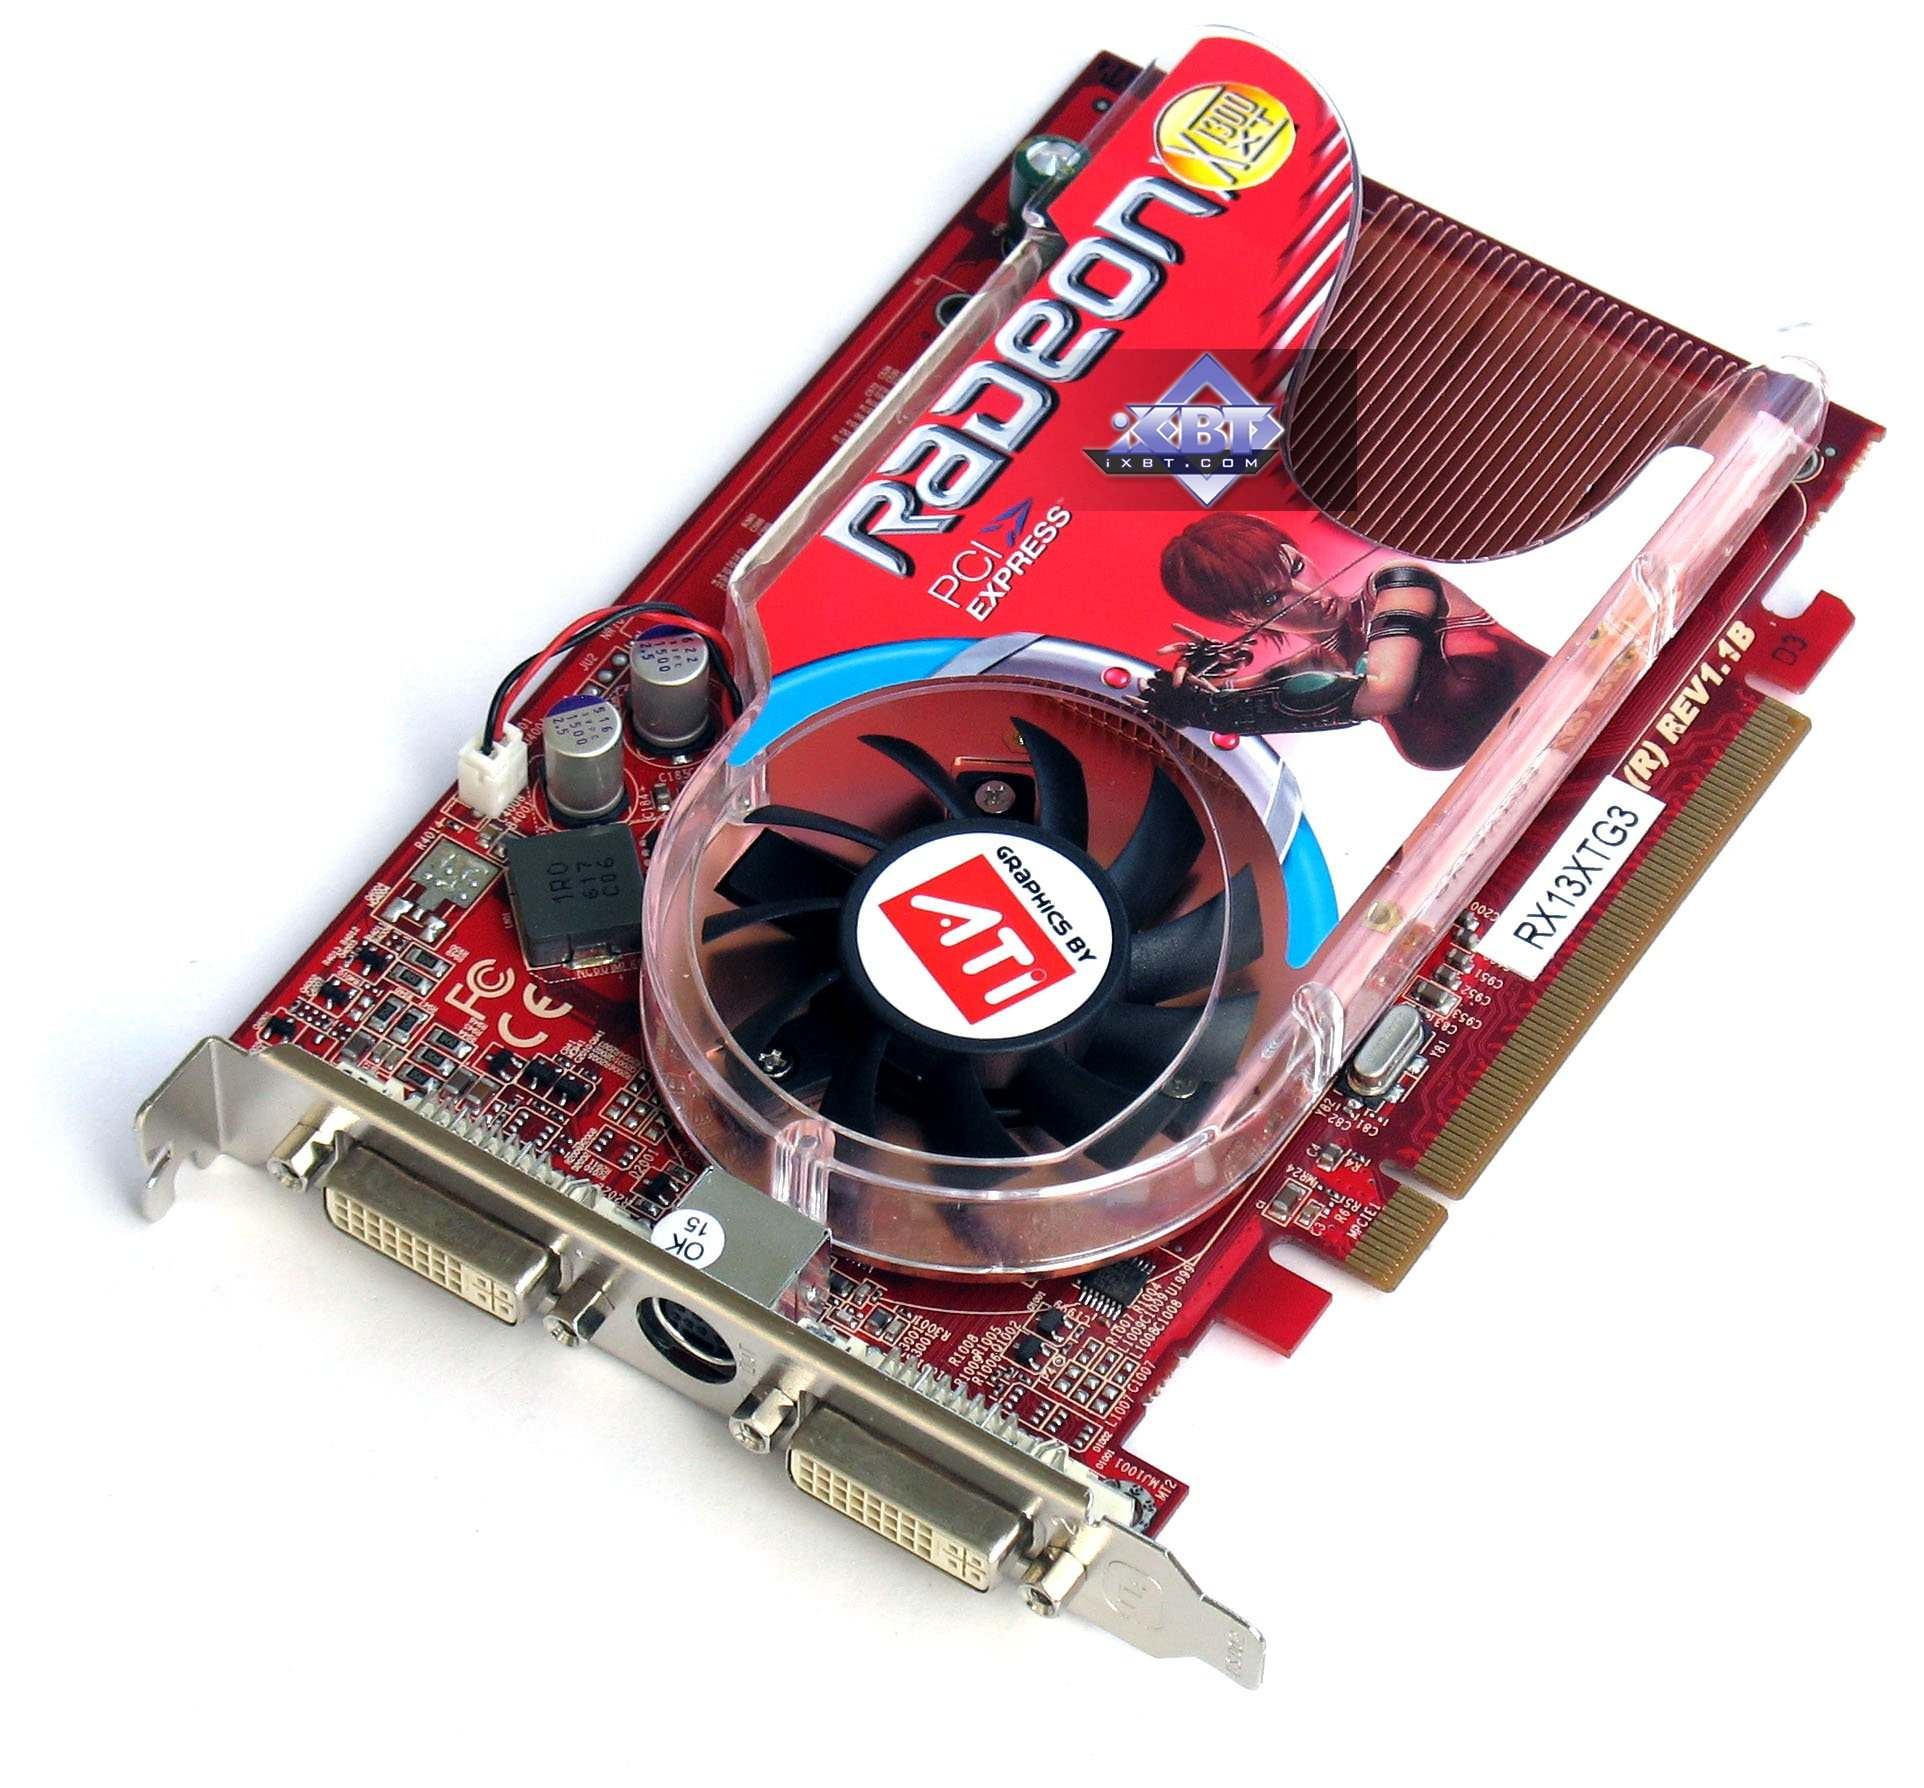 RADEON X1600 X1650 SERIES DRIVER FOR WINDOWS